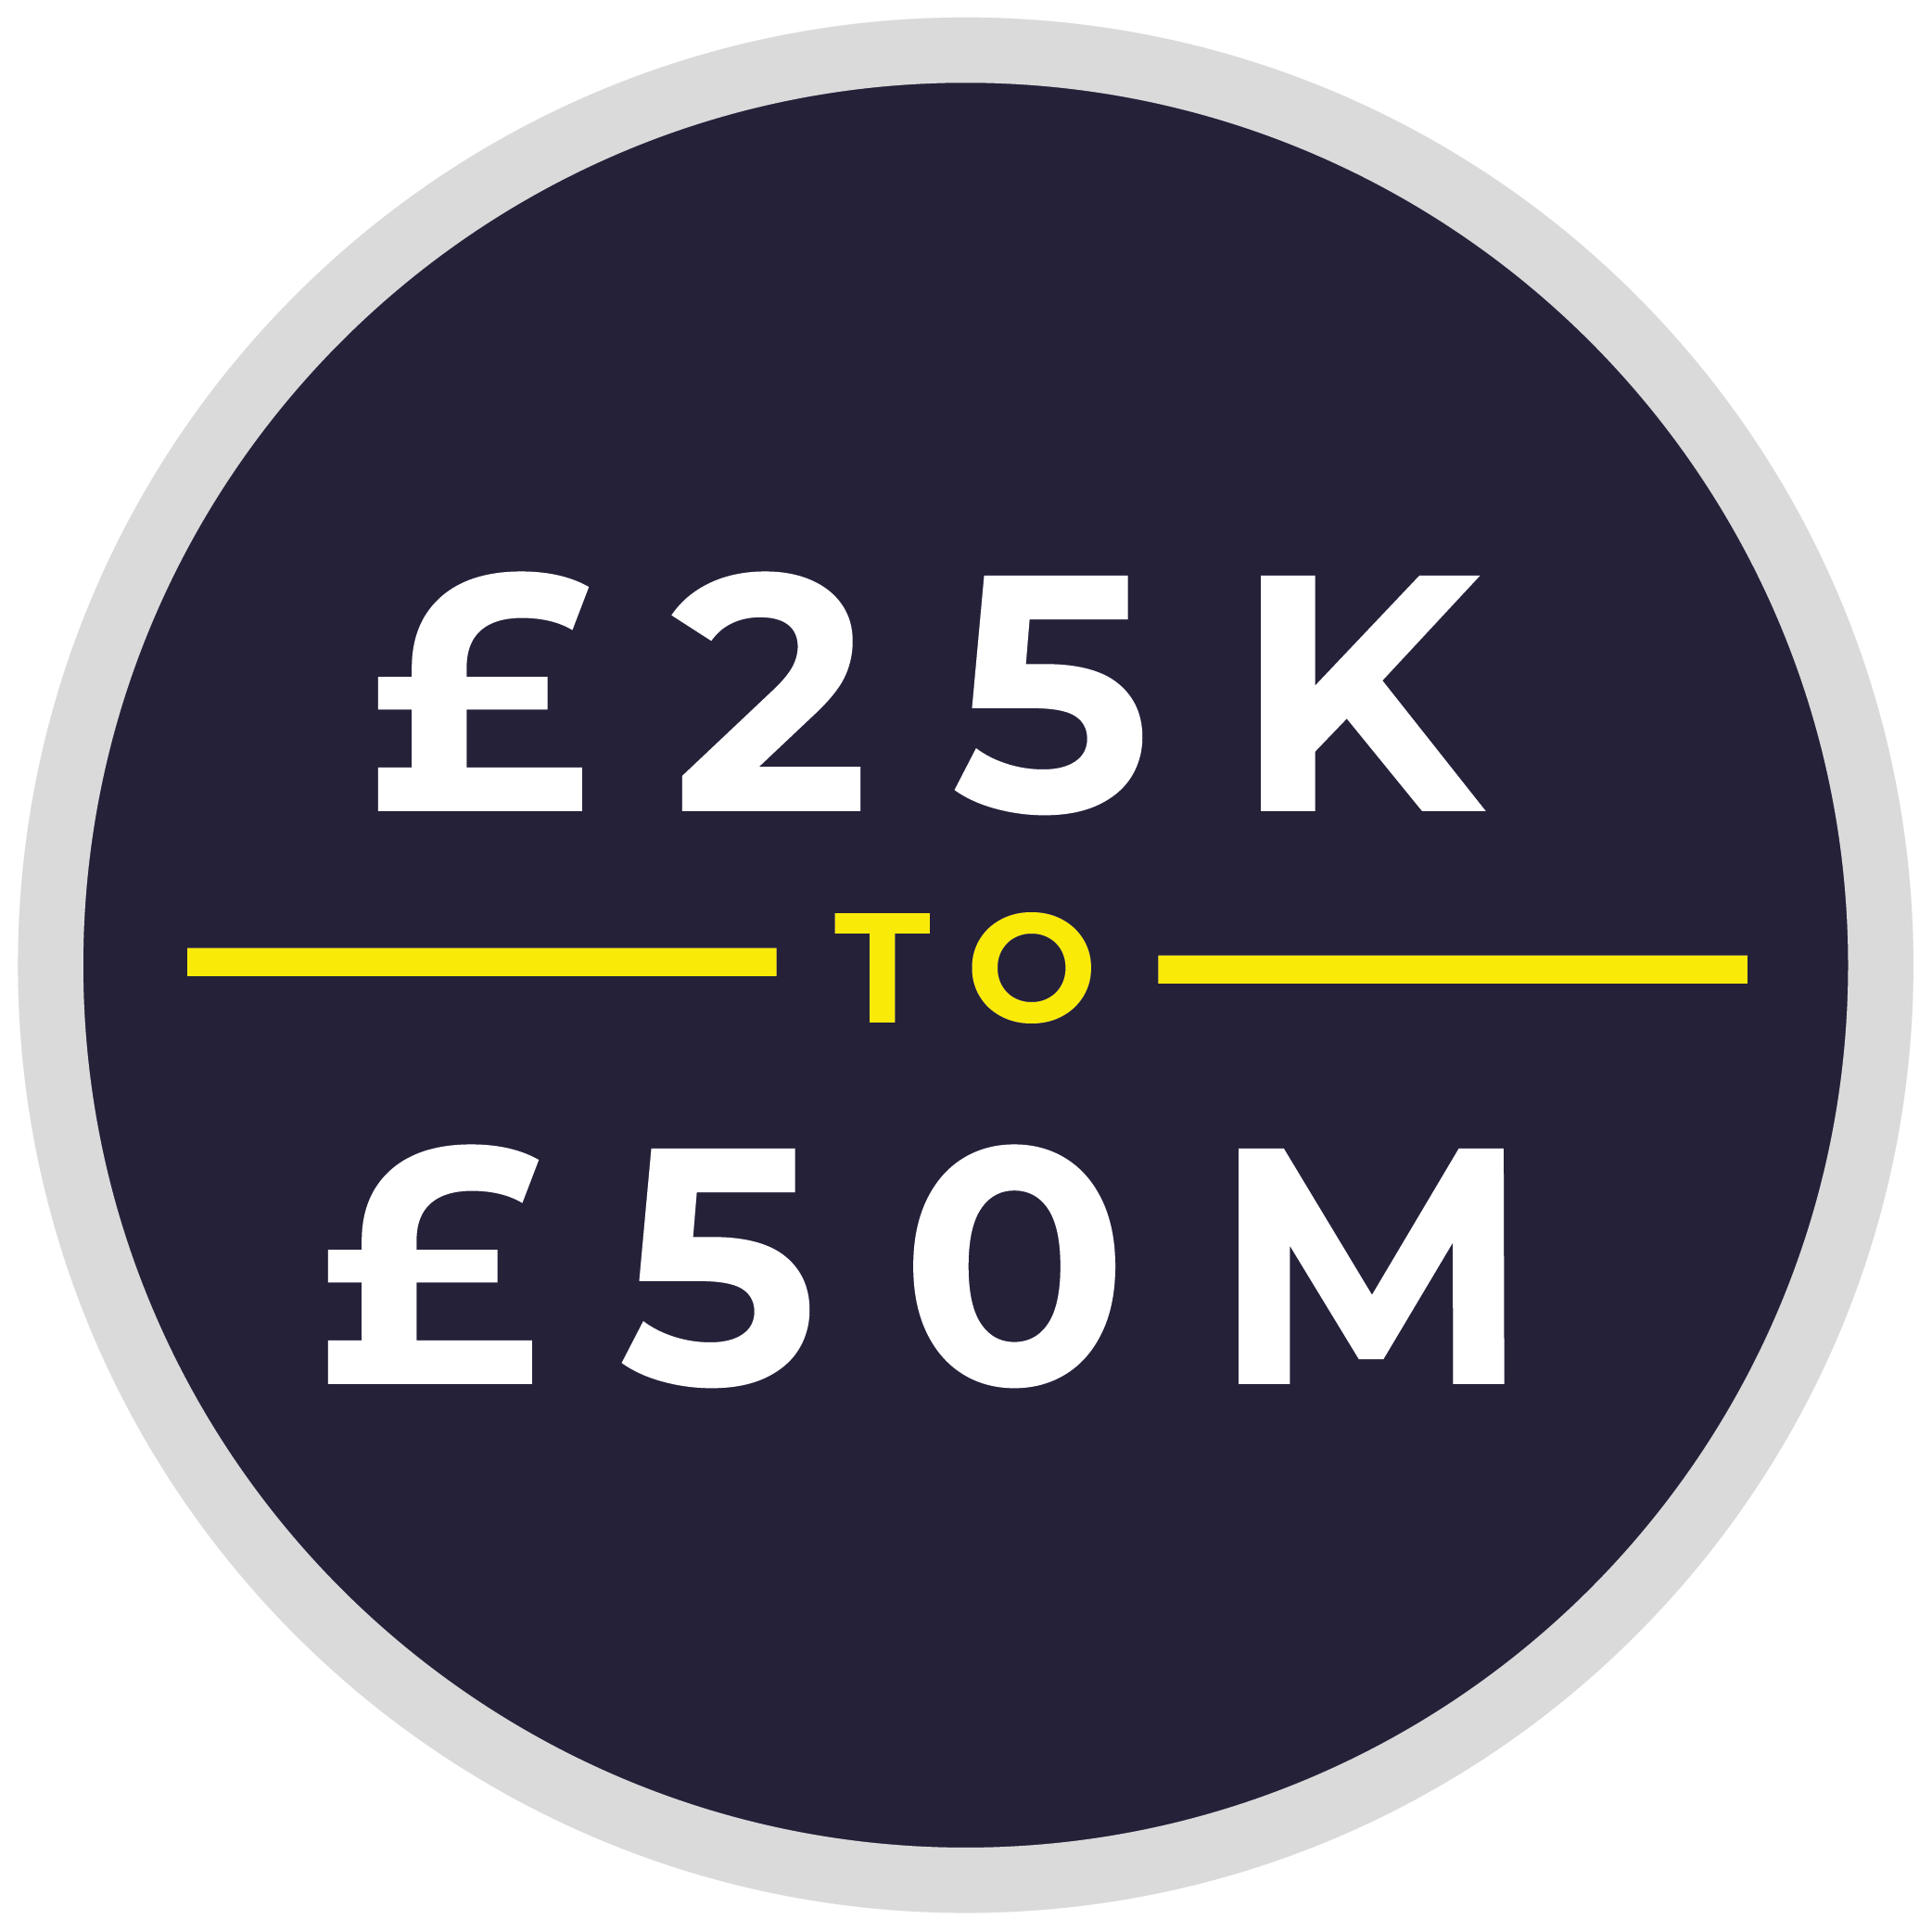 £25k to £50m